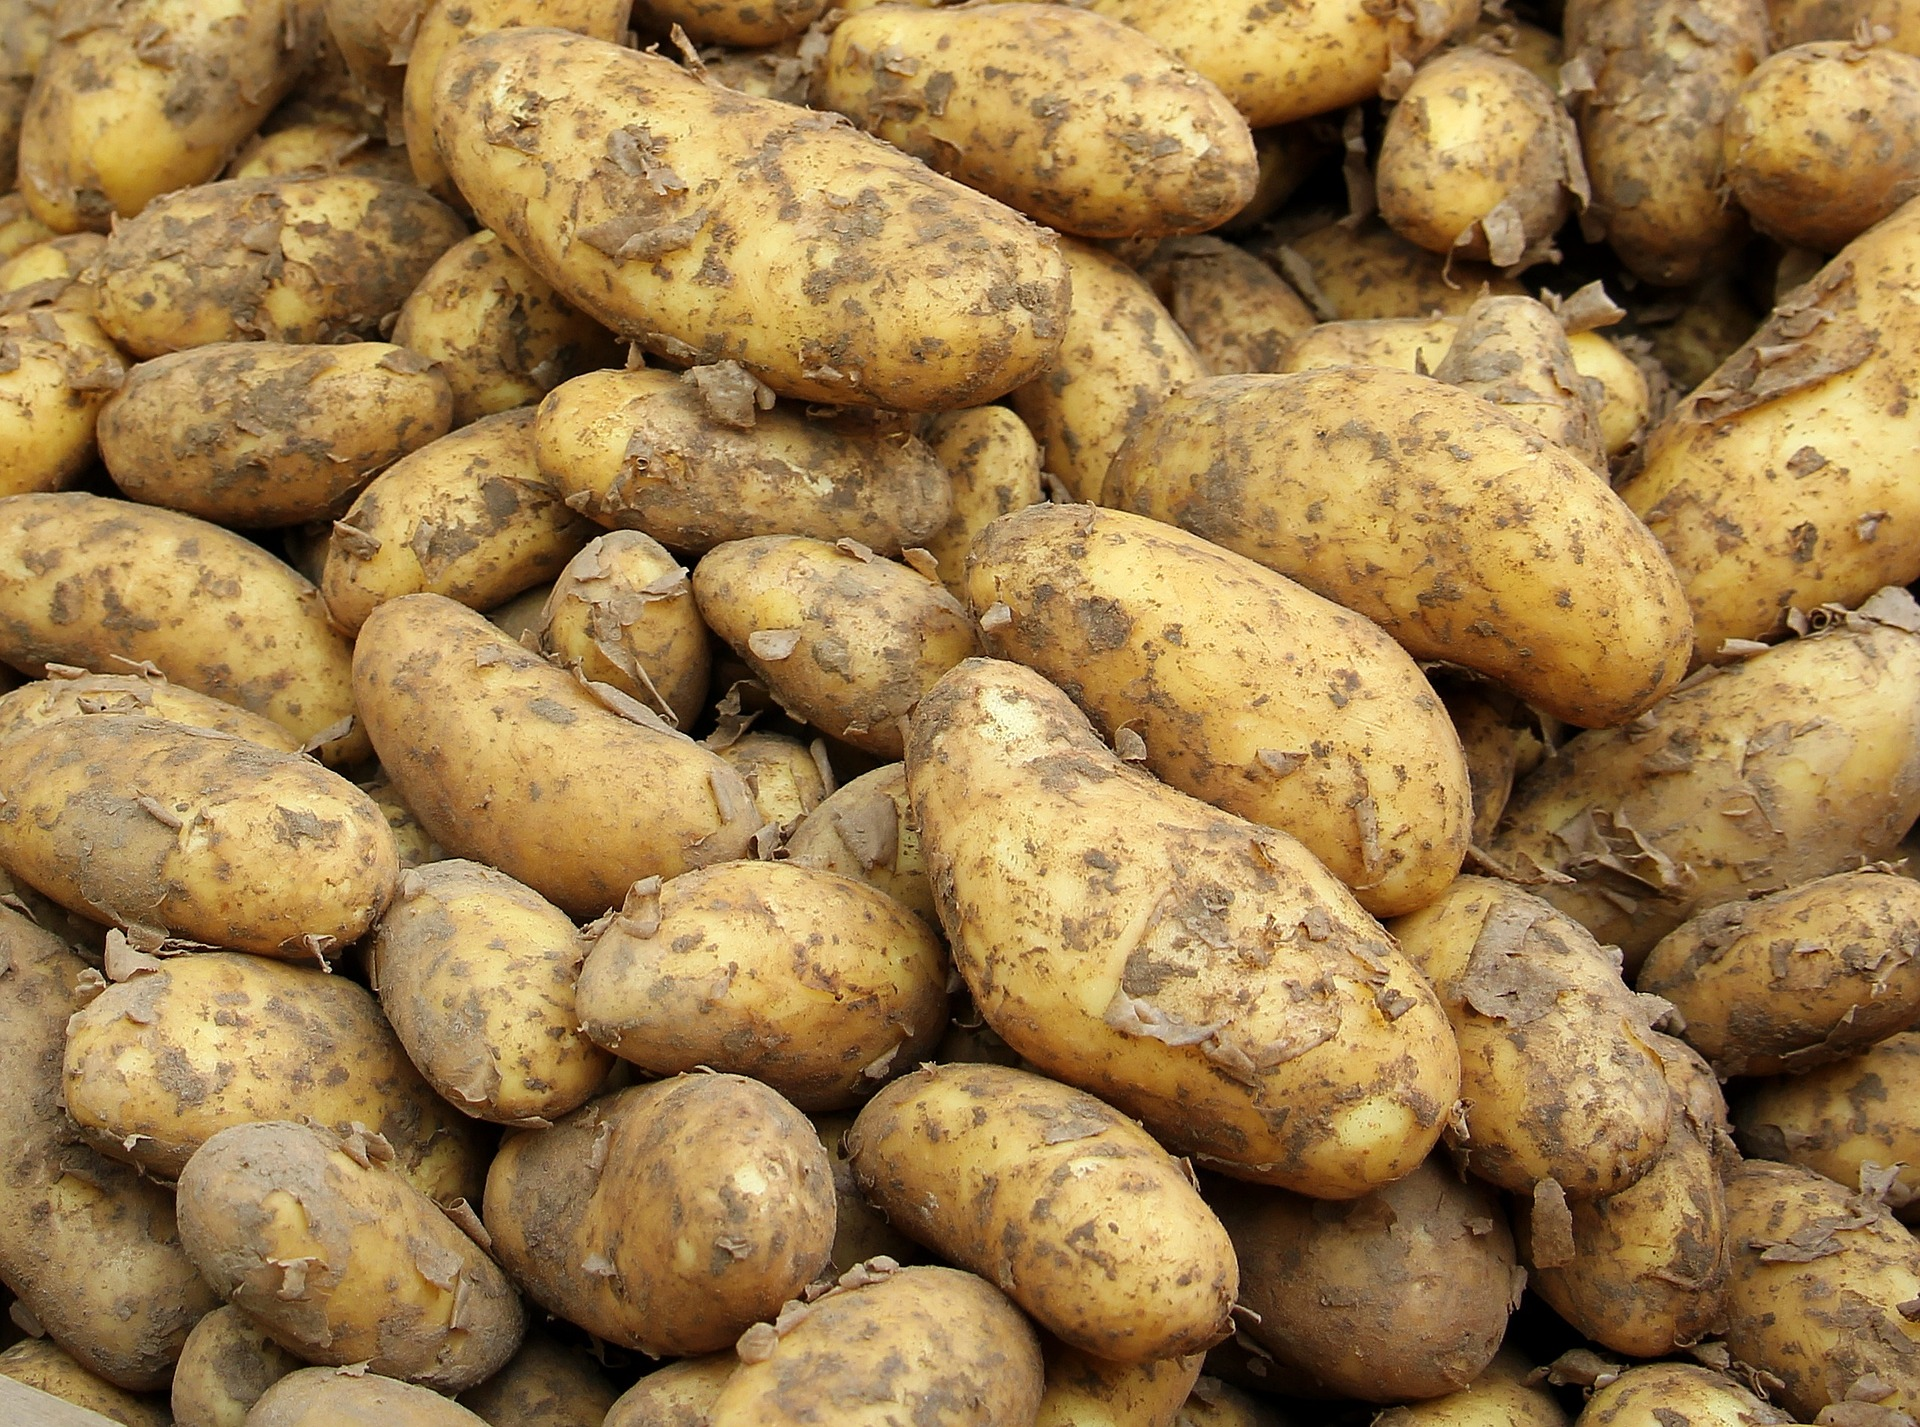 Tuber vegetables - World Crops Database